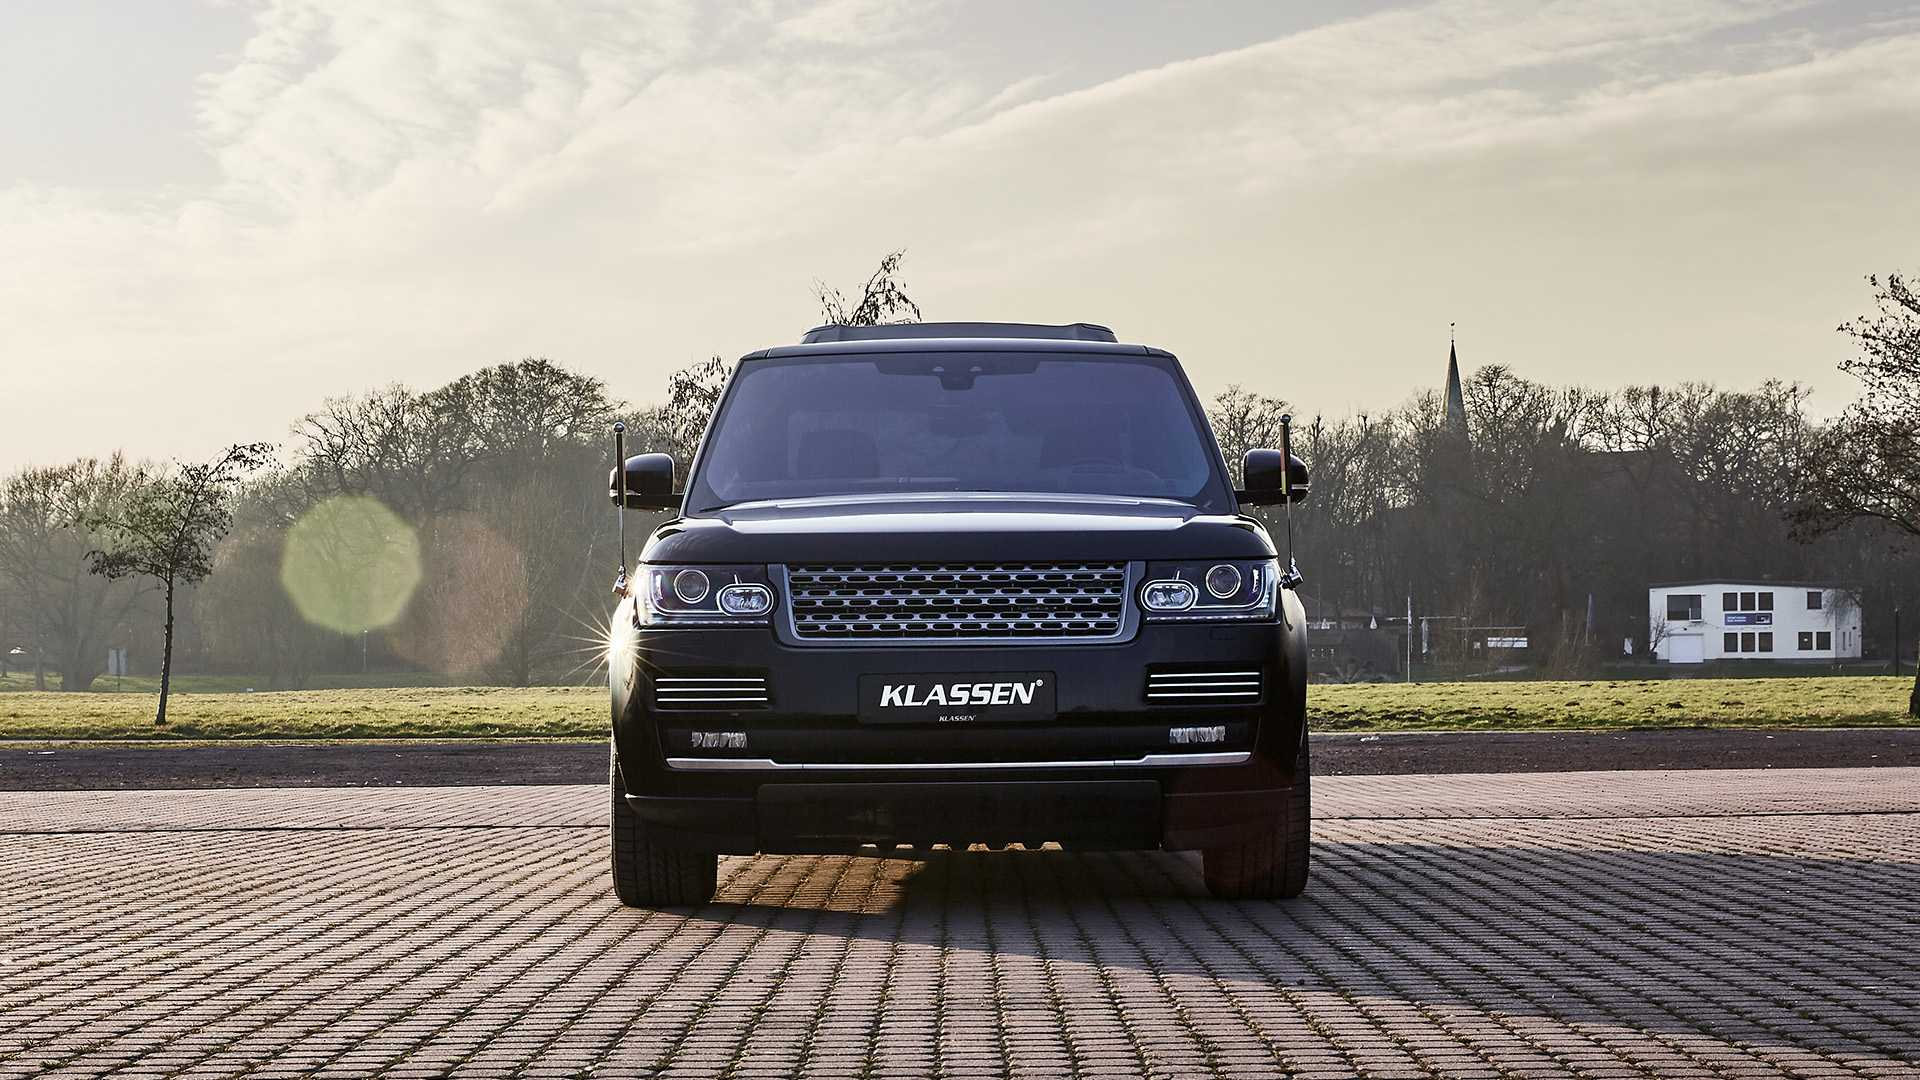 klassen-stretched-land-rover-range-rover-autobiography